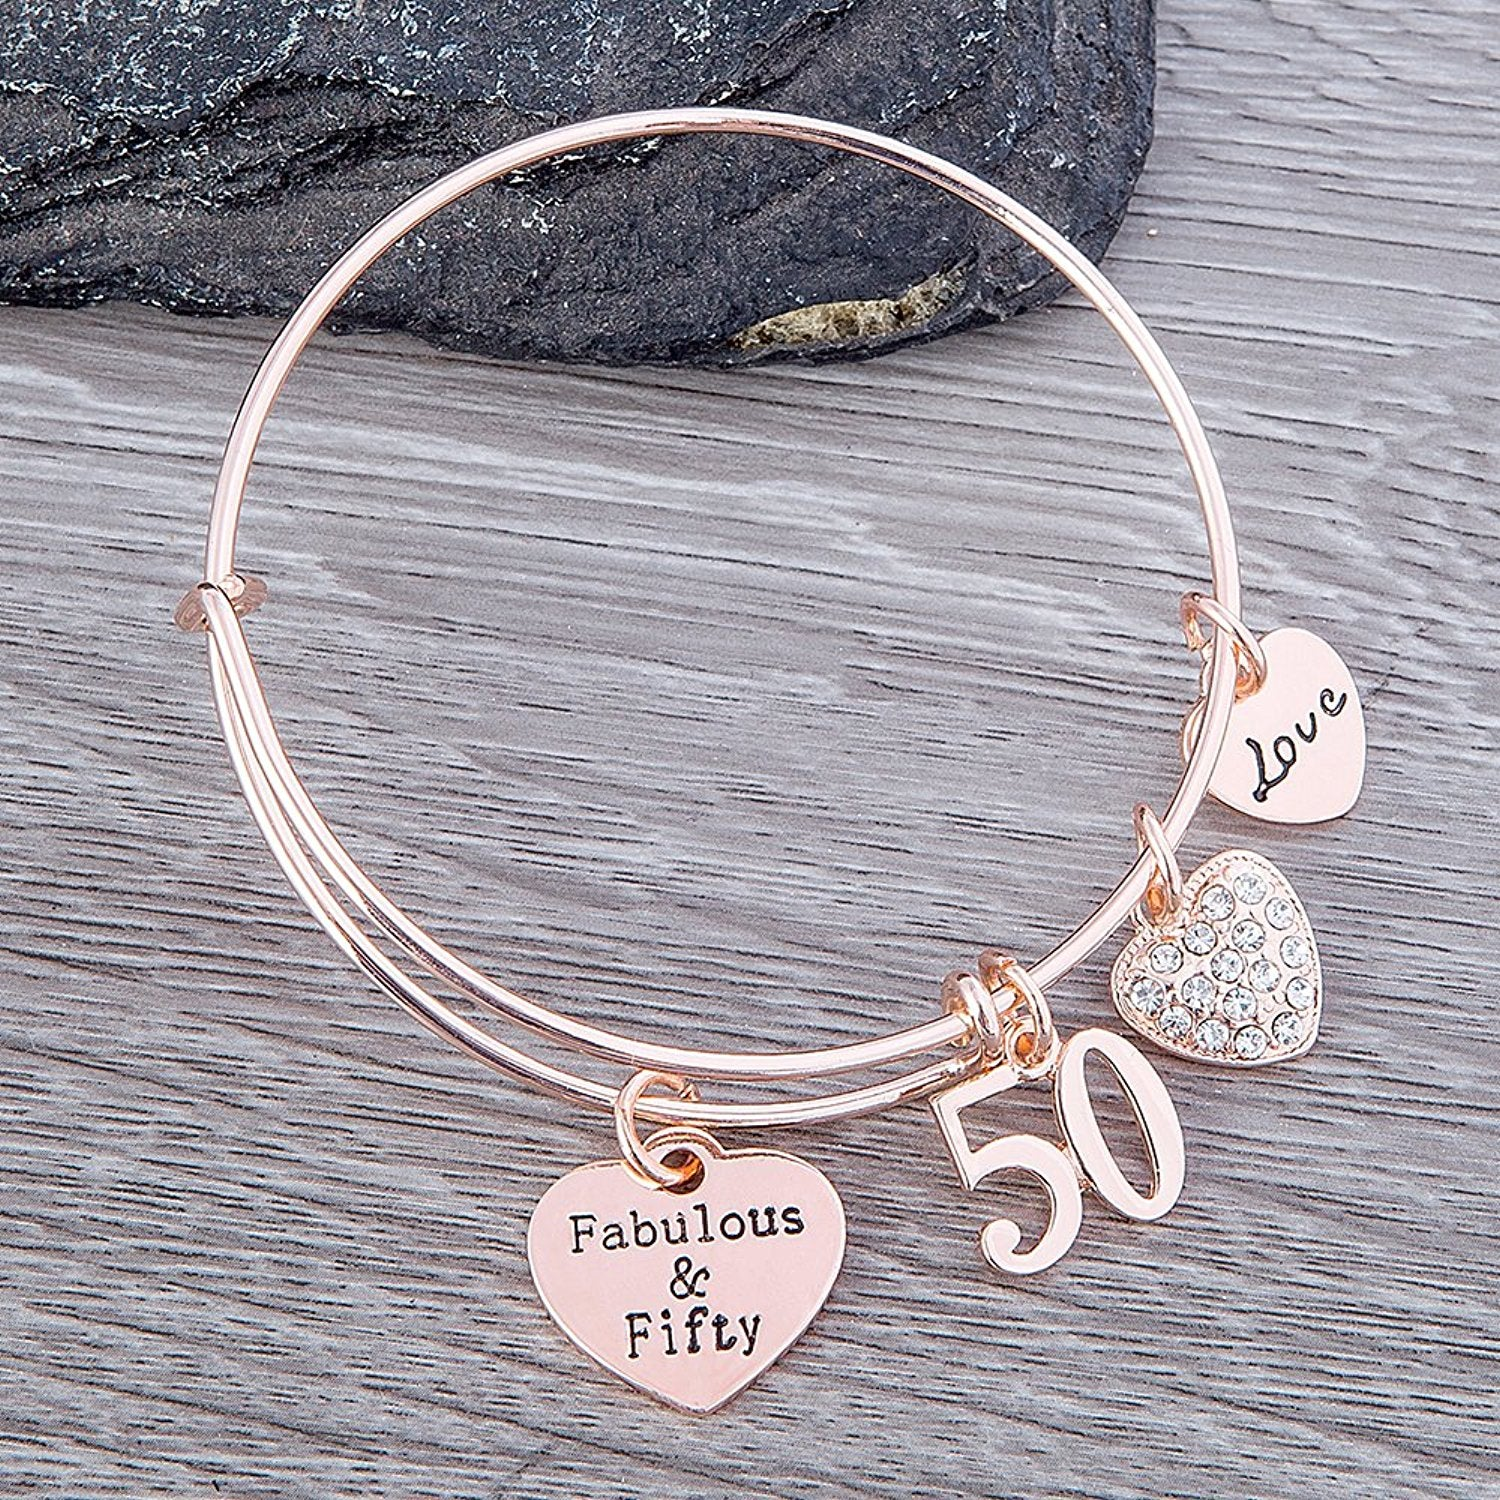 50th Birthday Gifts For Women Expandable Charm Bracelet Fabulous And Fifty